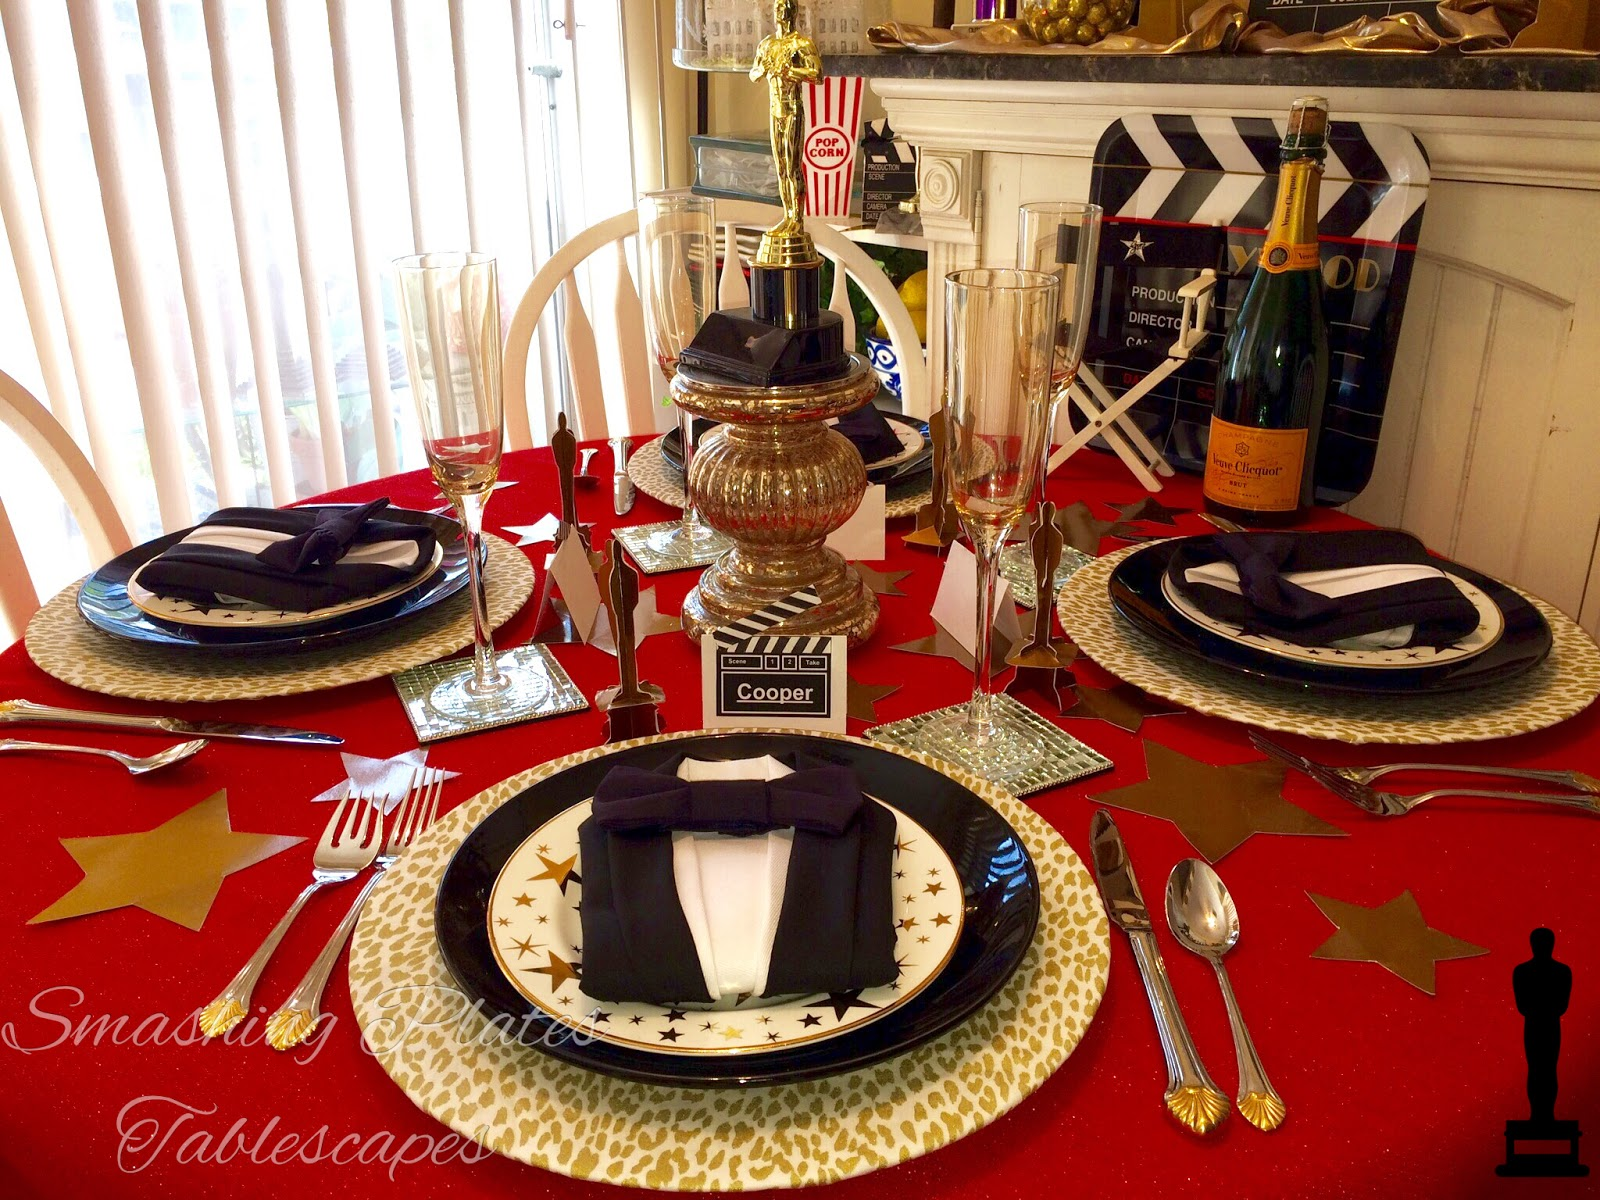 Smashing Plates Tablescapes: And the Oscar Goes To...